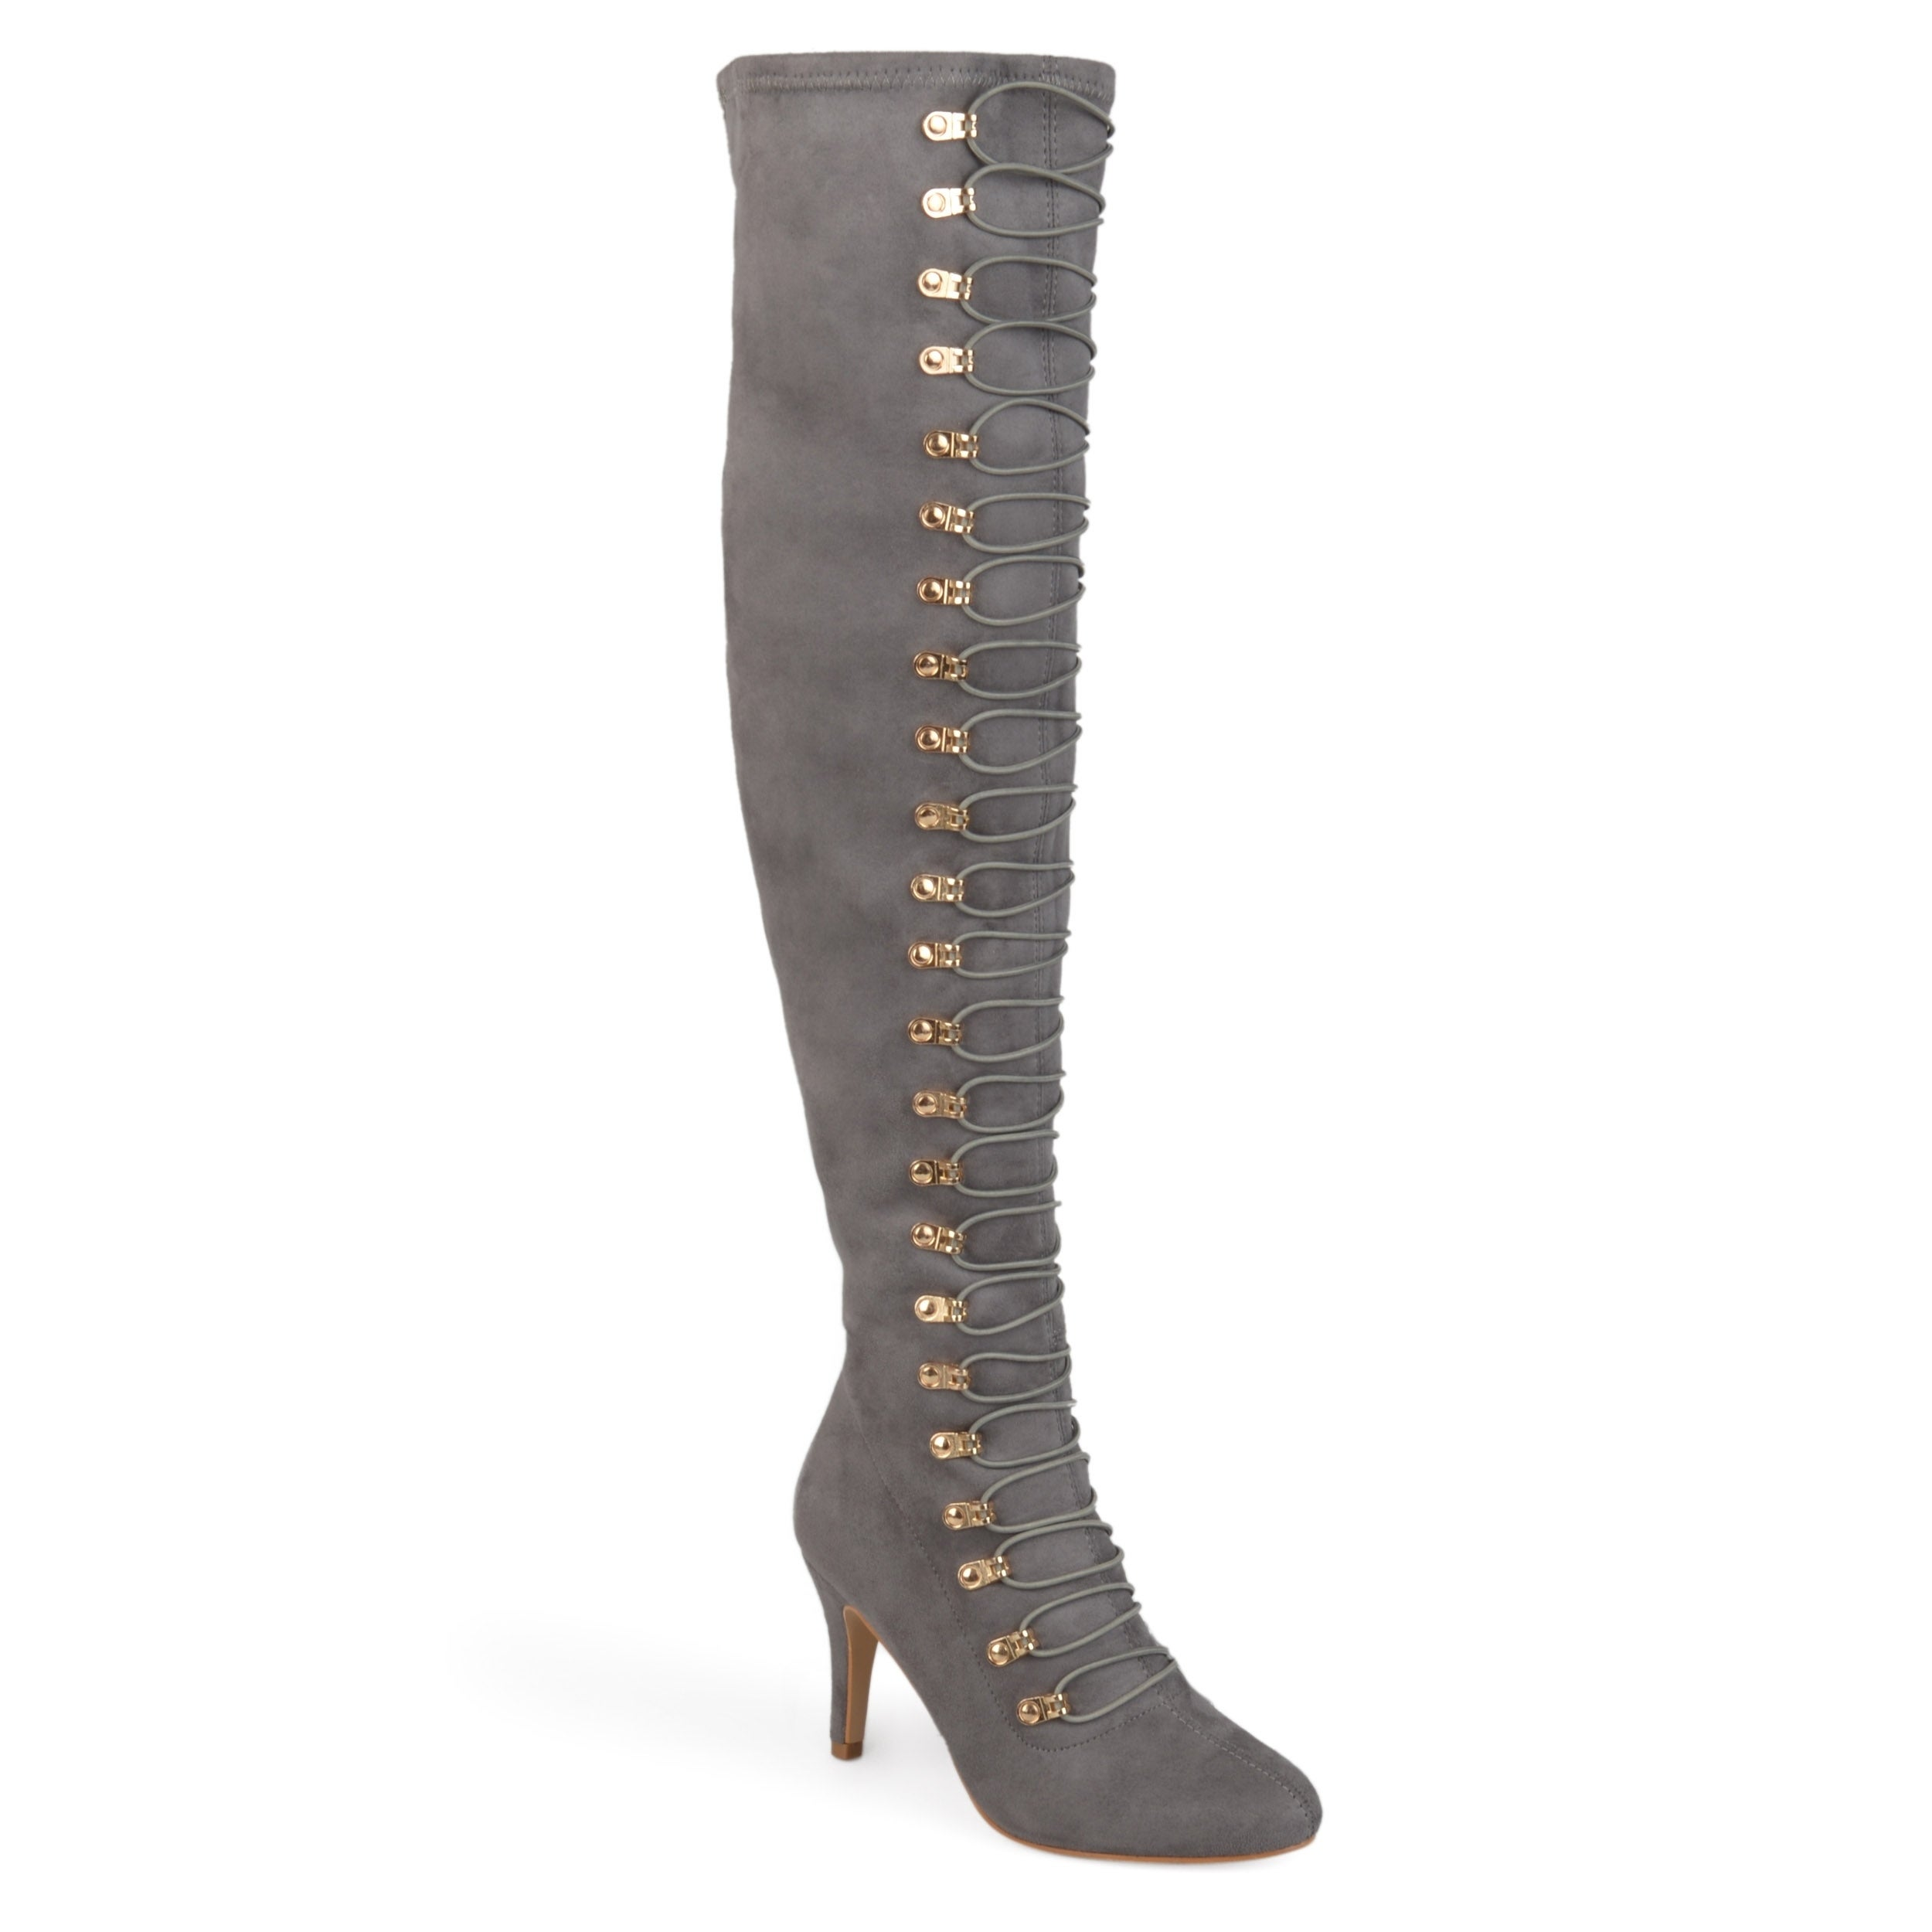 d02931532cab Shop Journee Collection Women s  Trill  Regular and Wide Calf Boots - On  Sale - Free Shipping Today - Overstock - 17011774